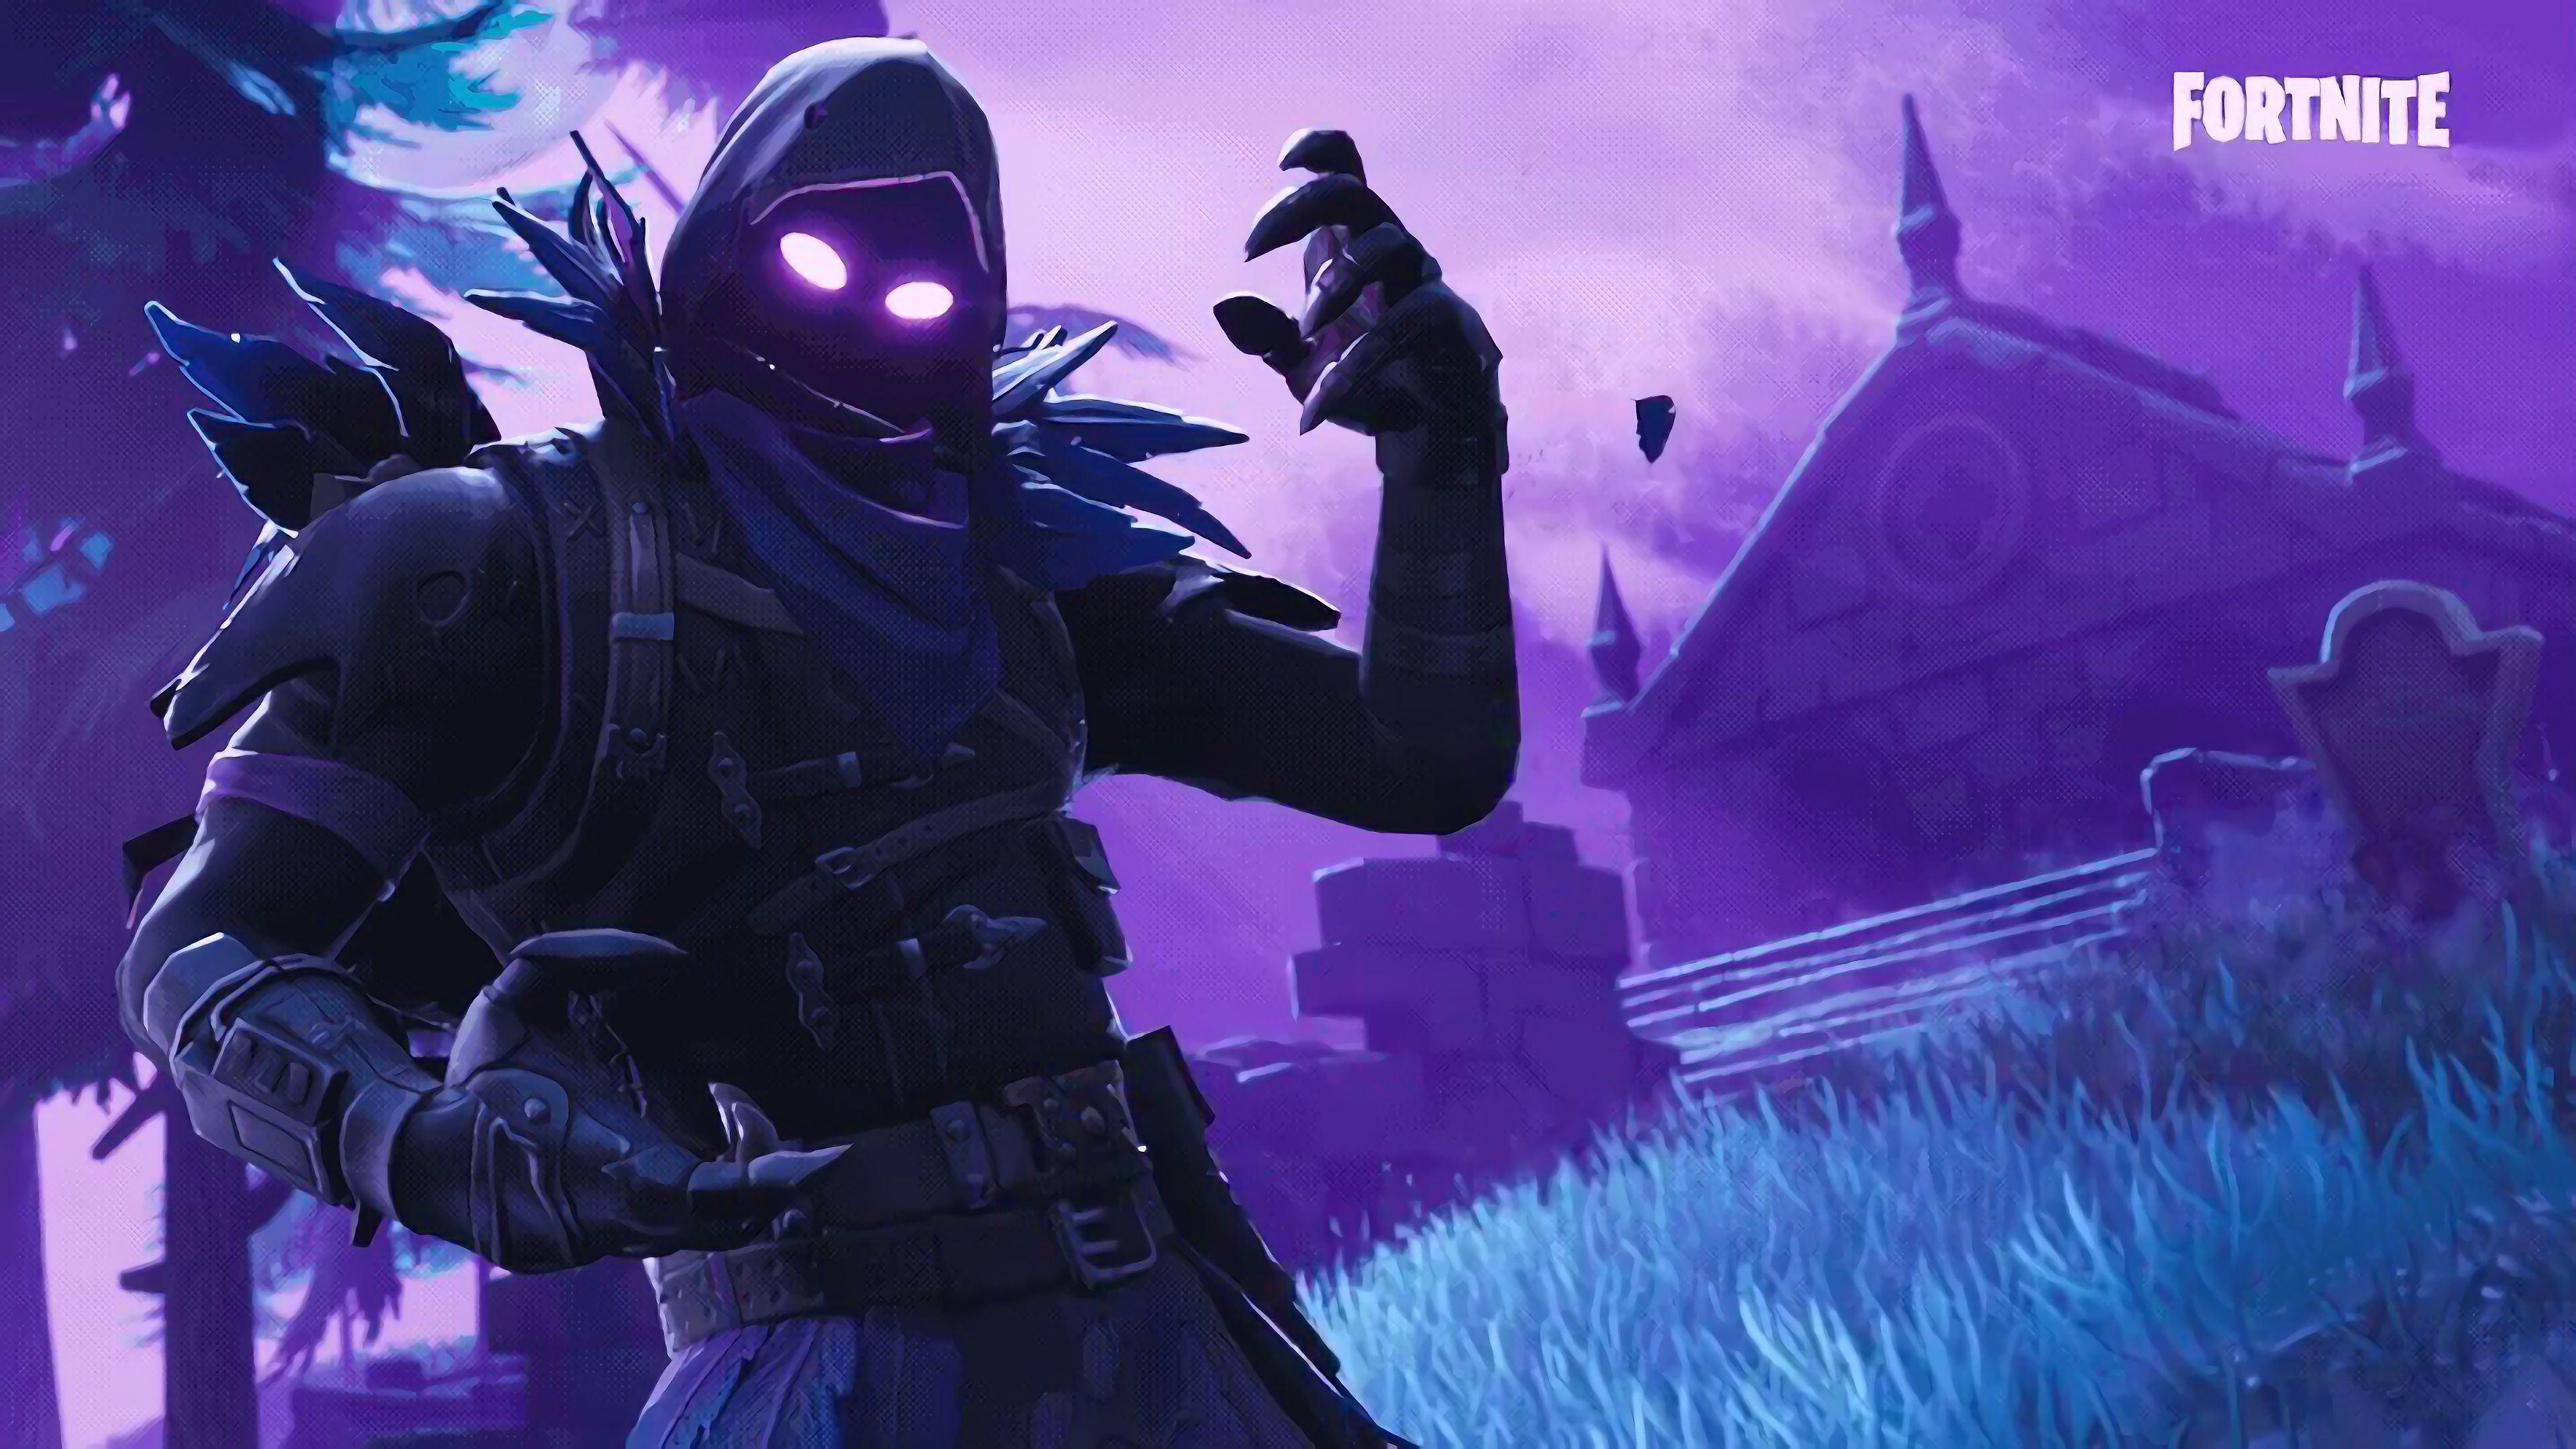 Raven Fortnite Battle Royale Video Game 3840x2160 Wallpaper